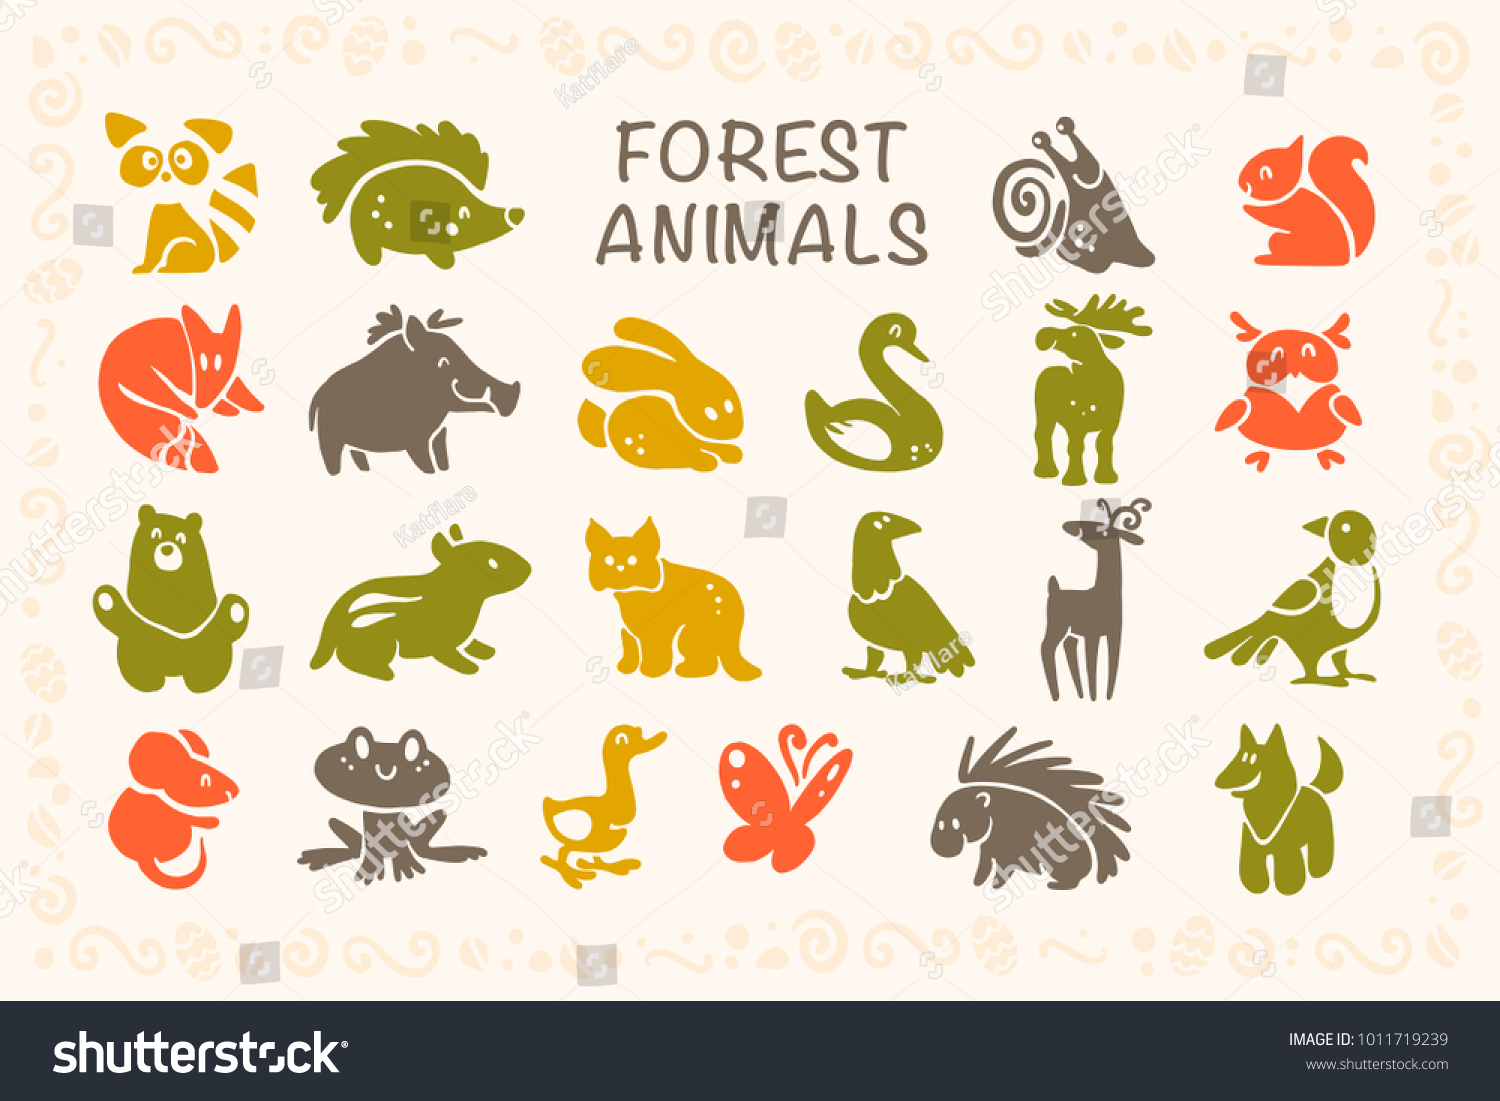 7b2e4a216aae7 Vector collection of flat cute animal icons isolated on white background.  Forest animals and birds symbols. Hand drawn emblems. Perfect for logo  design